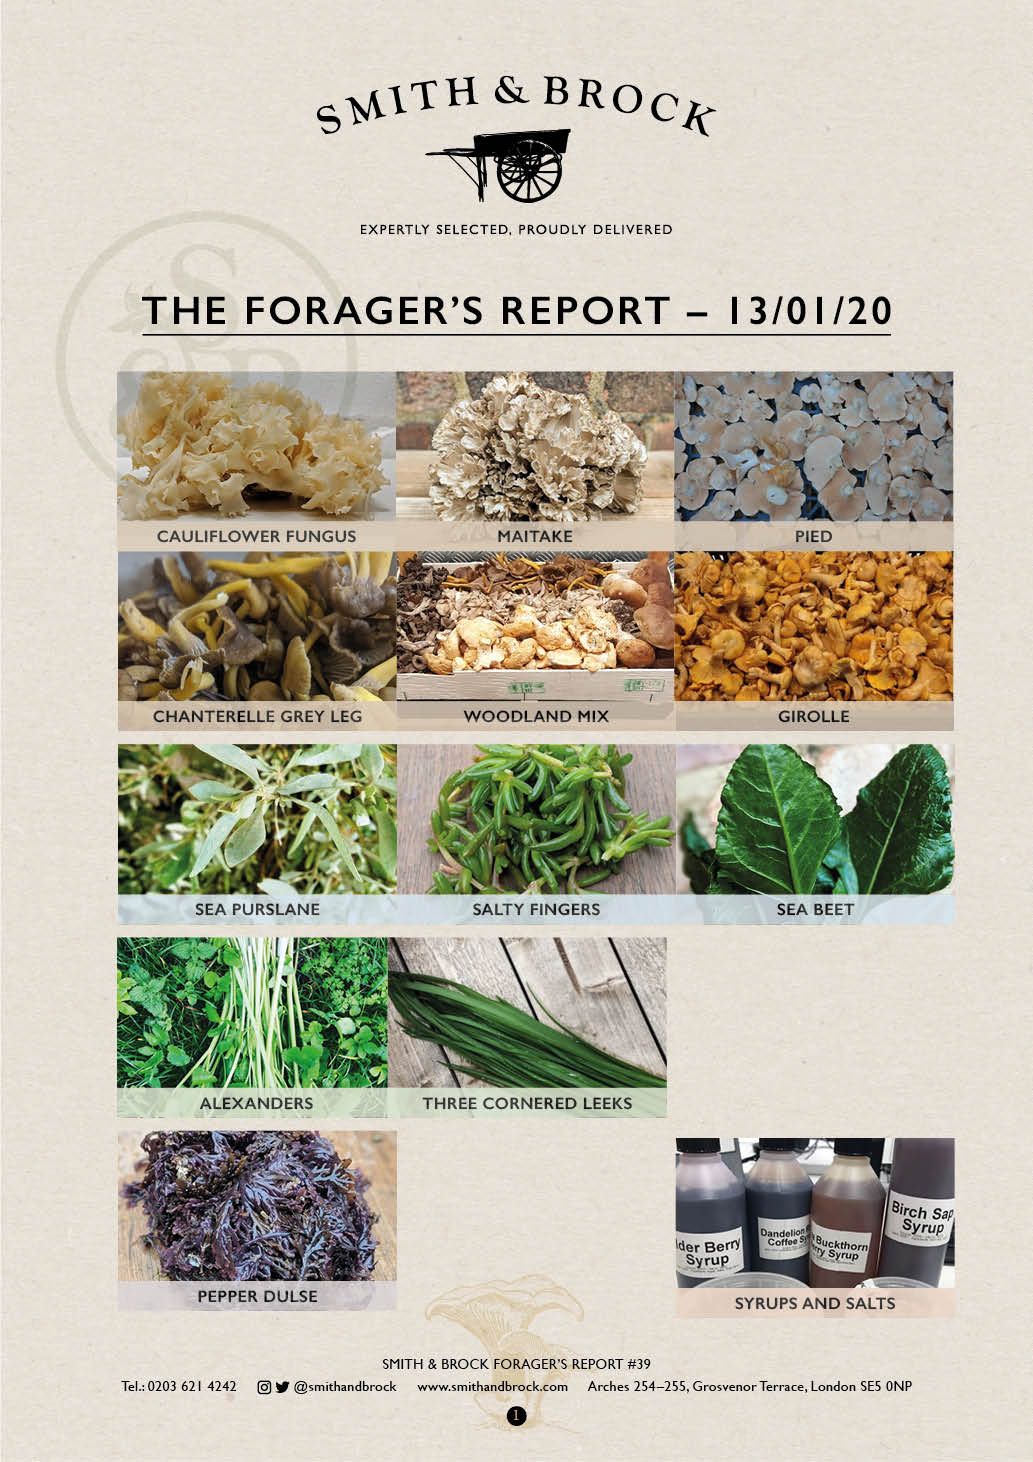 Smith&Brock Foraged Products Report 13 Jan 2020 39